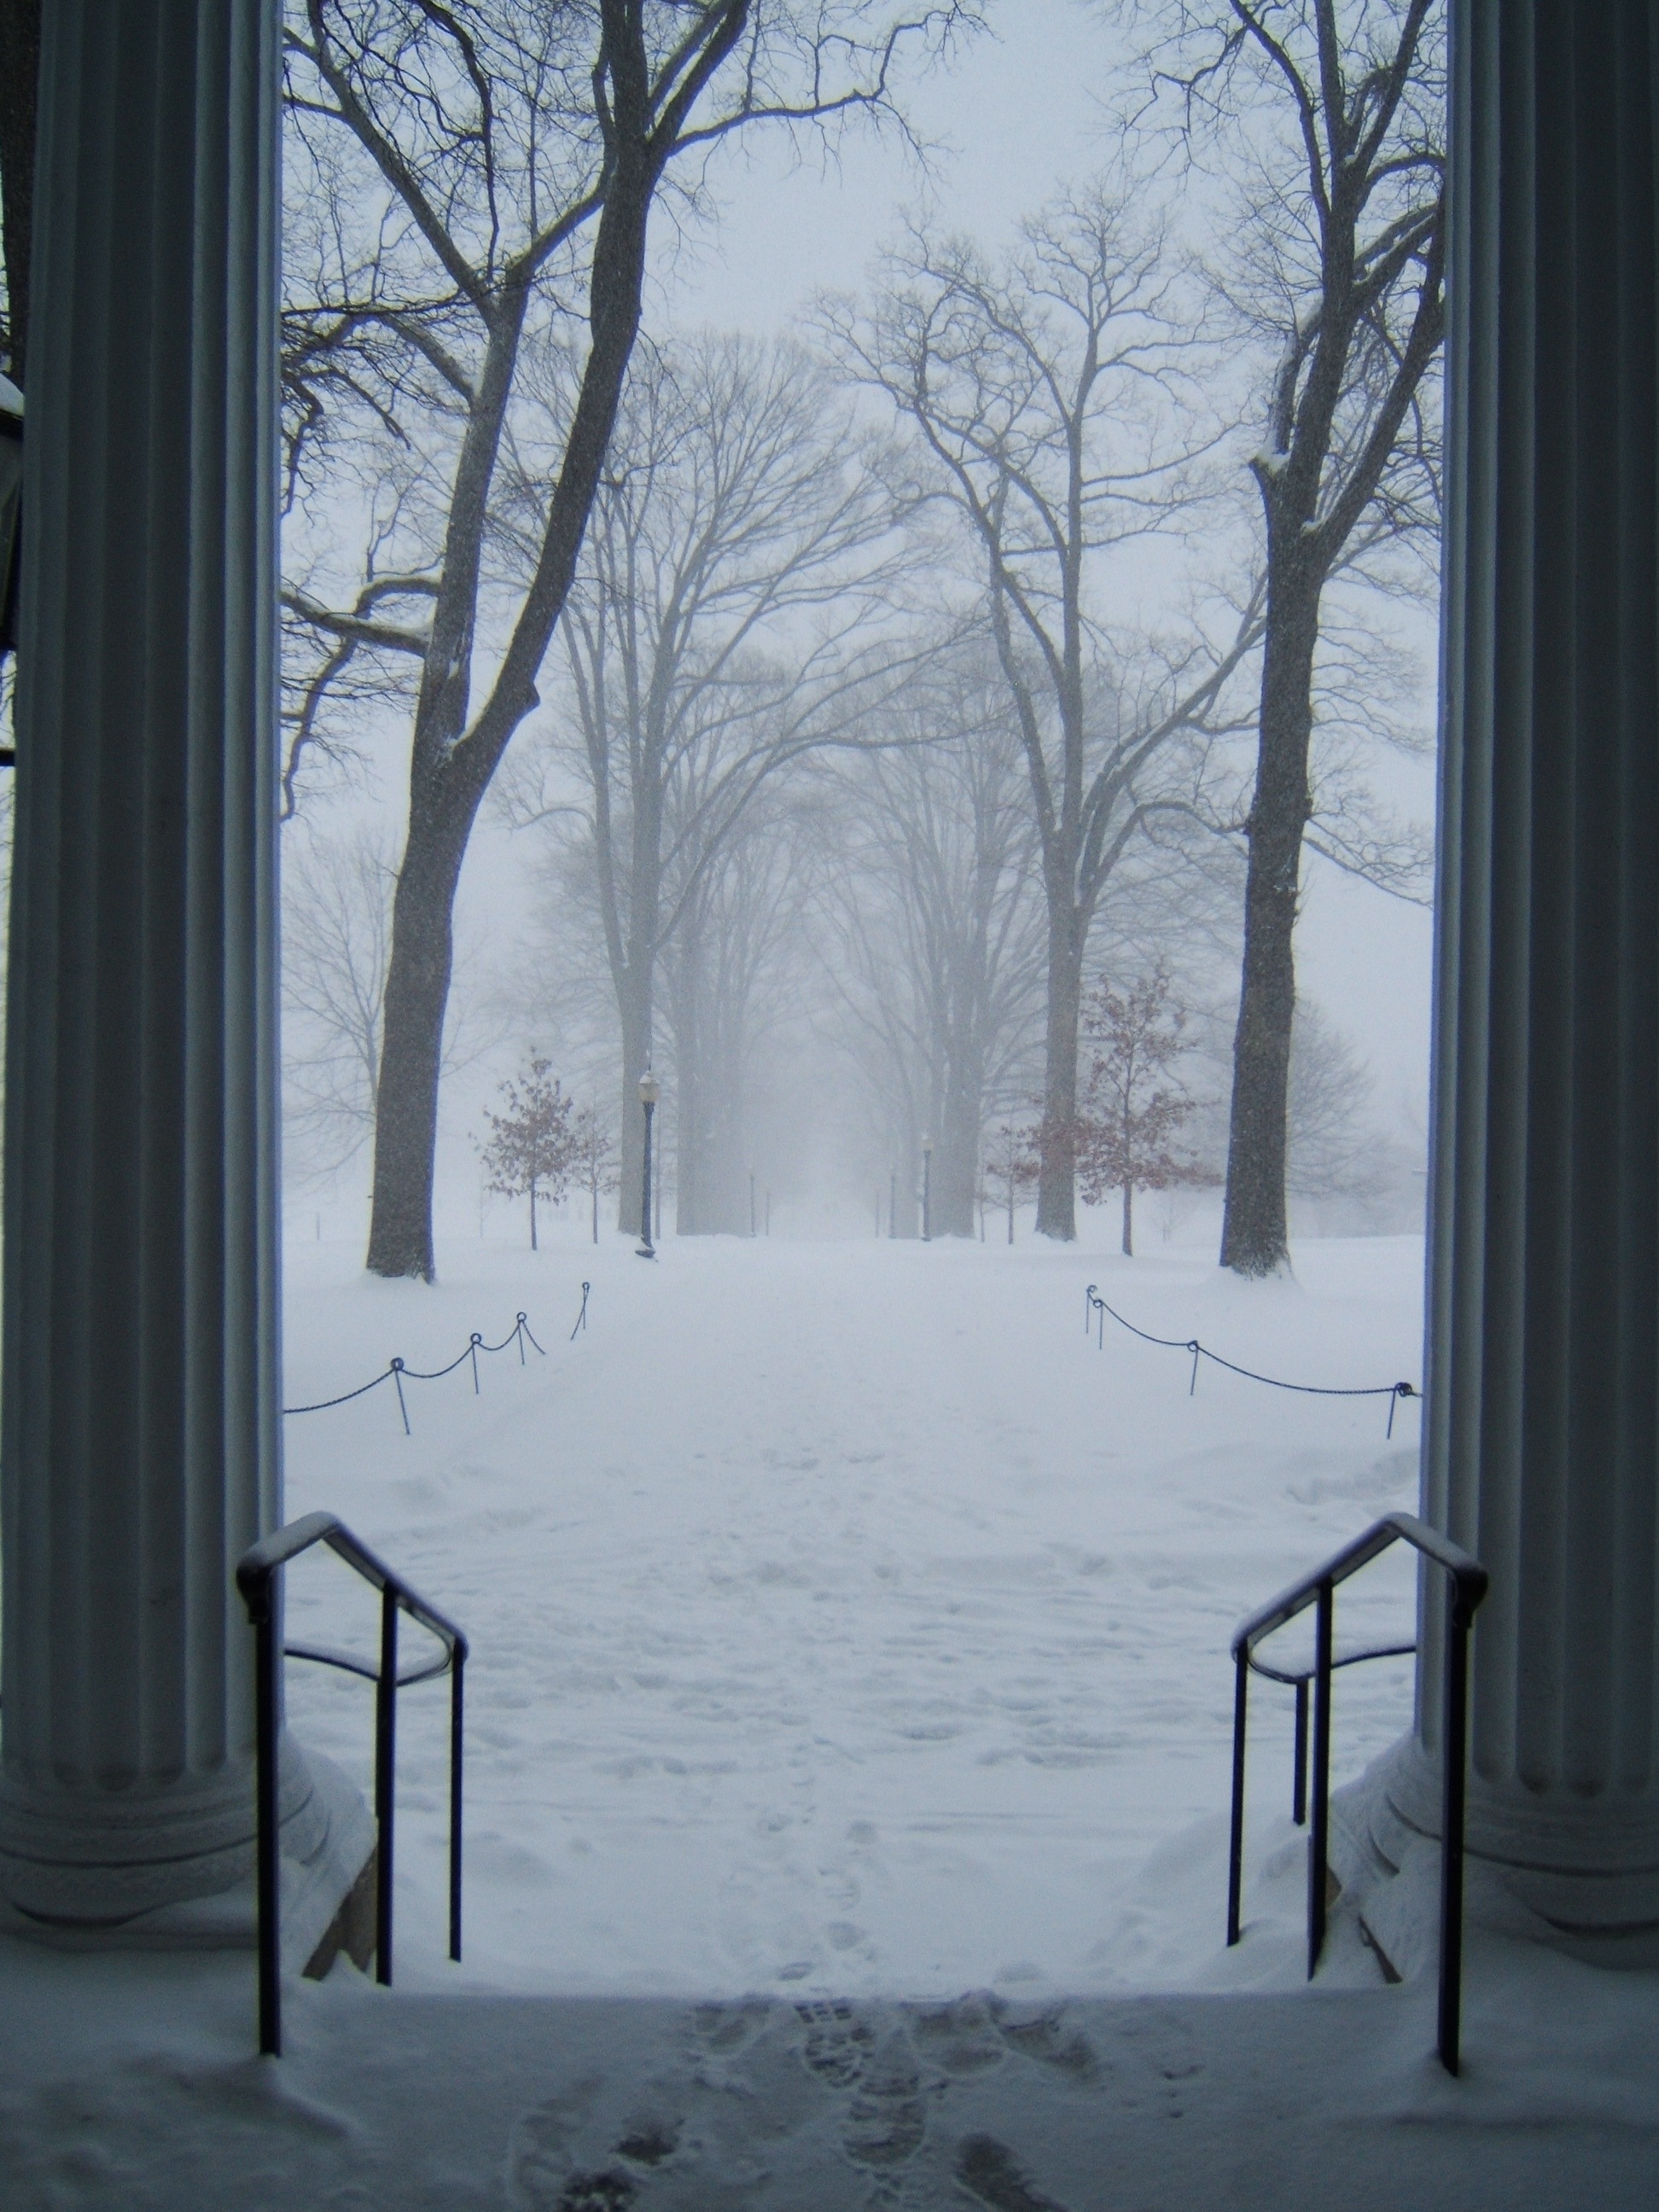 Parrish Walk in the snow. Swarthmore, Pennsylvania. 2005.